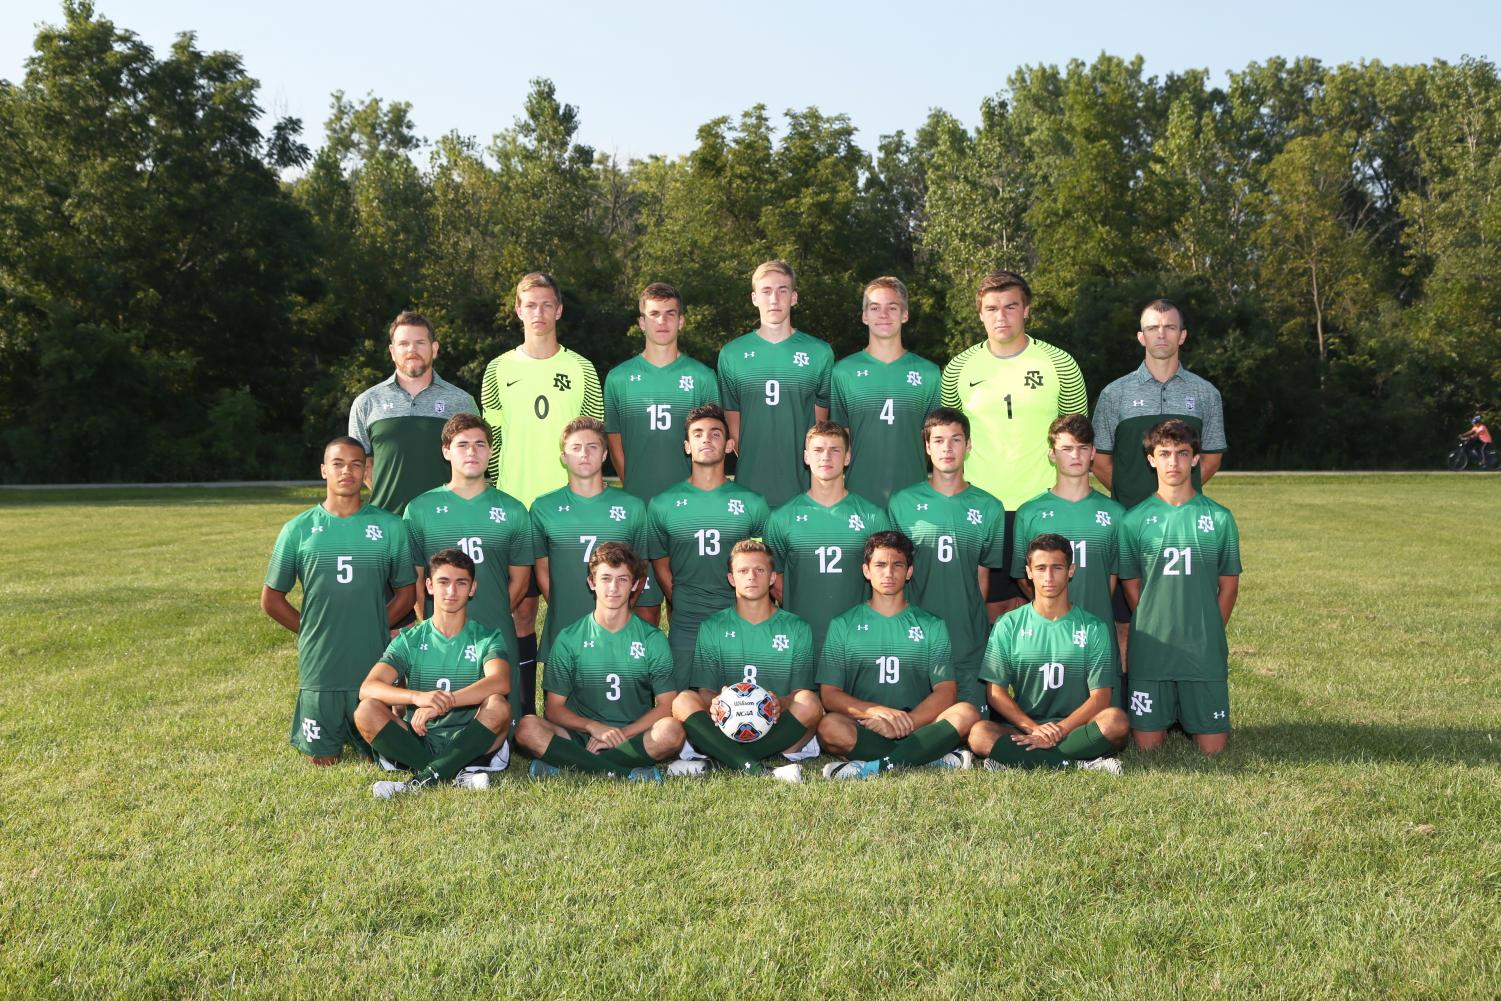 Boys varsity soccer team getting ready for the playoffs after a strong regular season